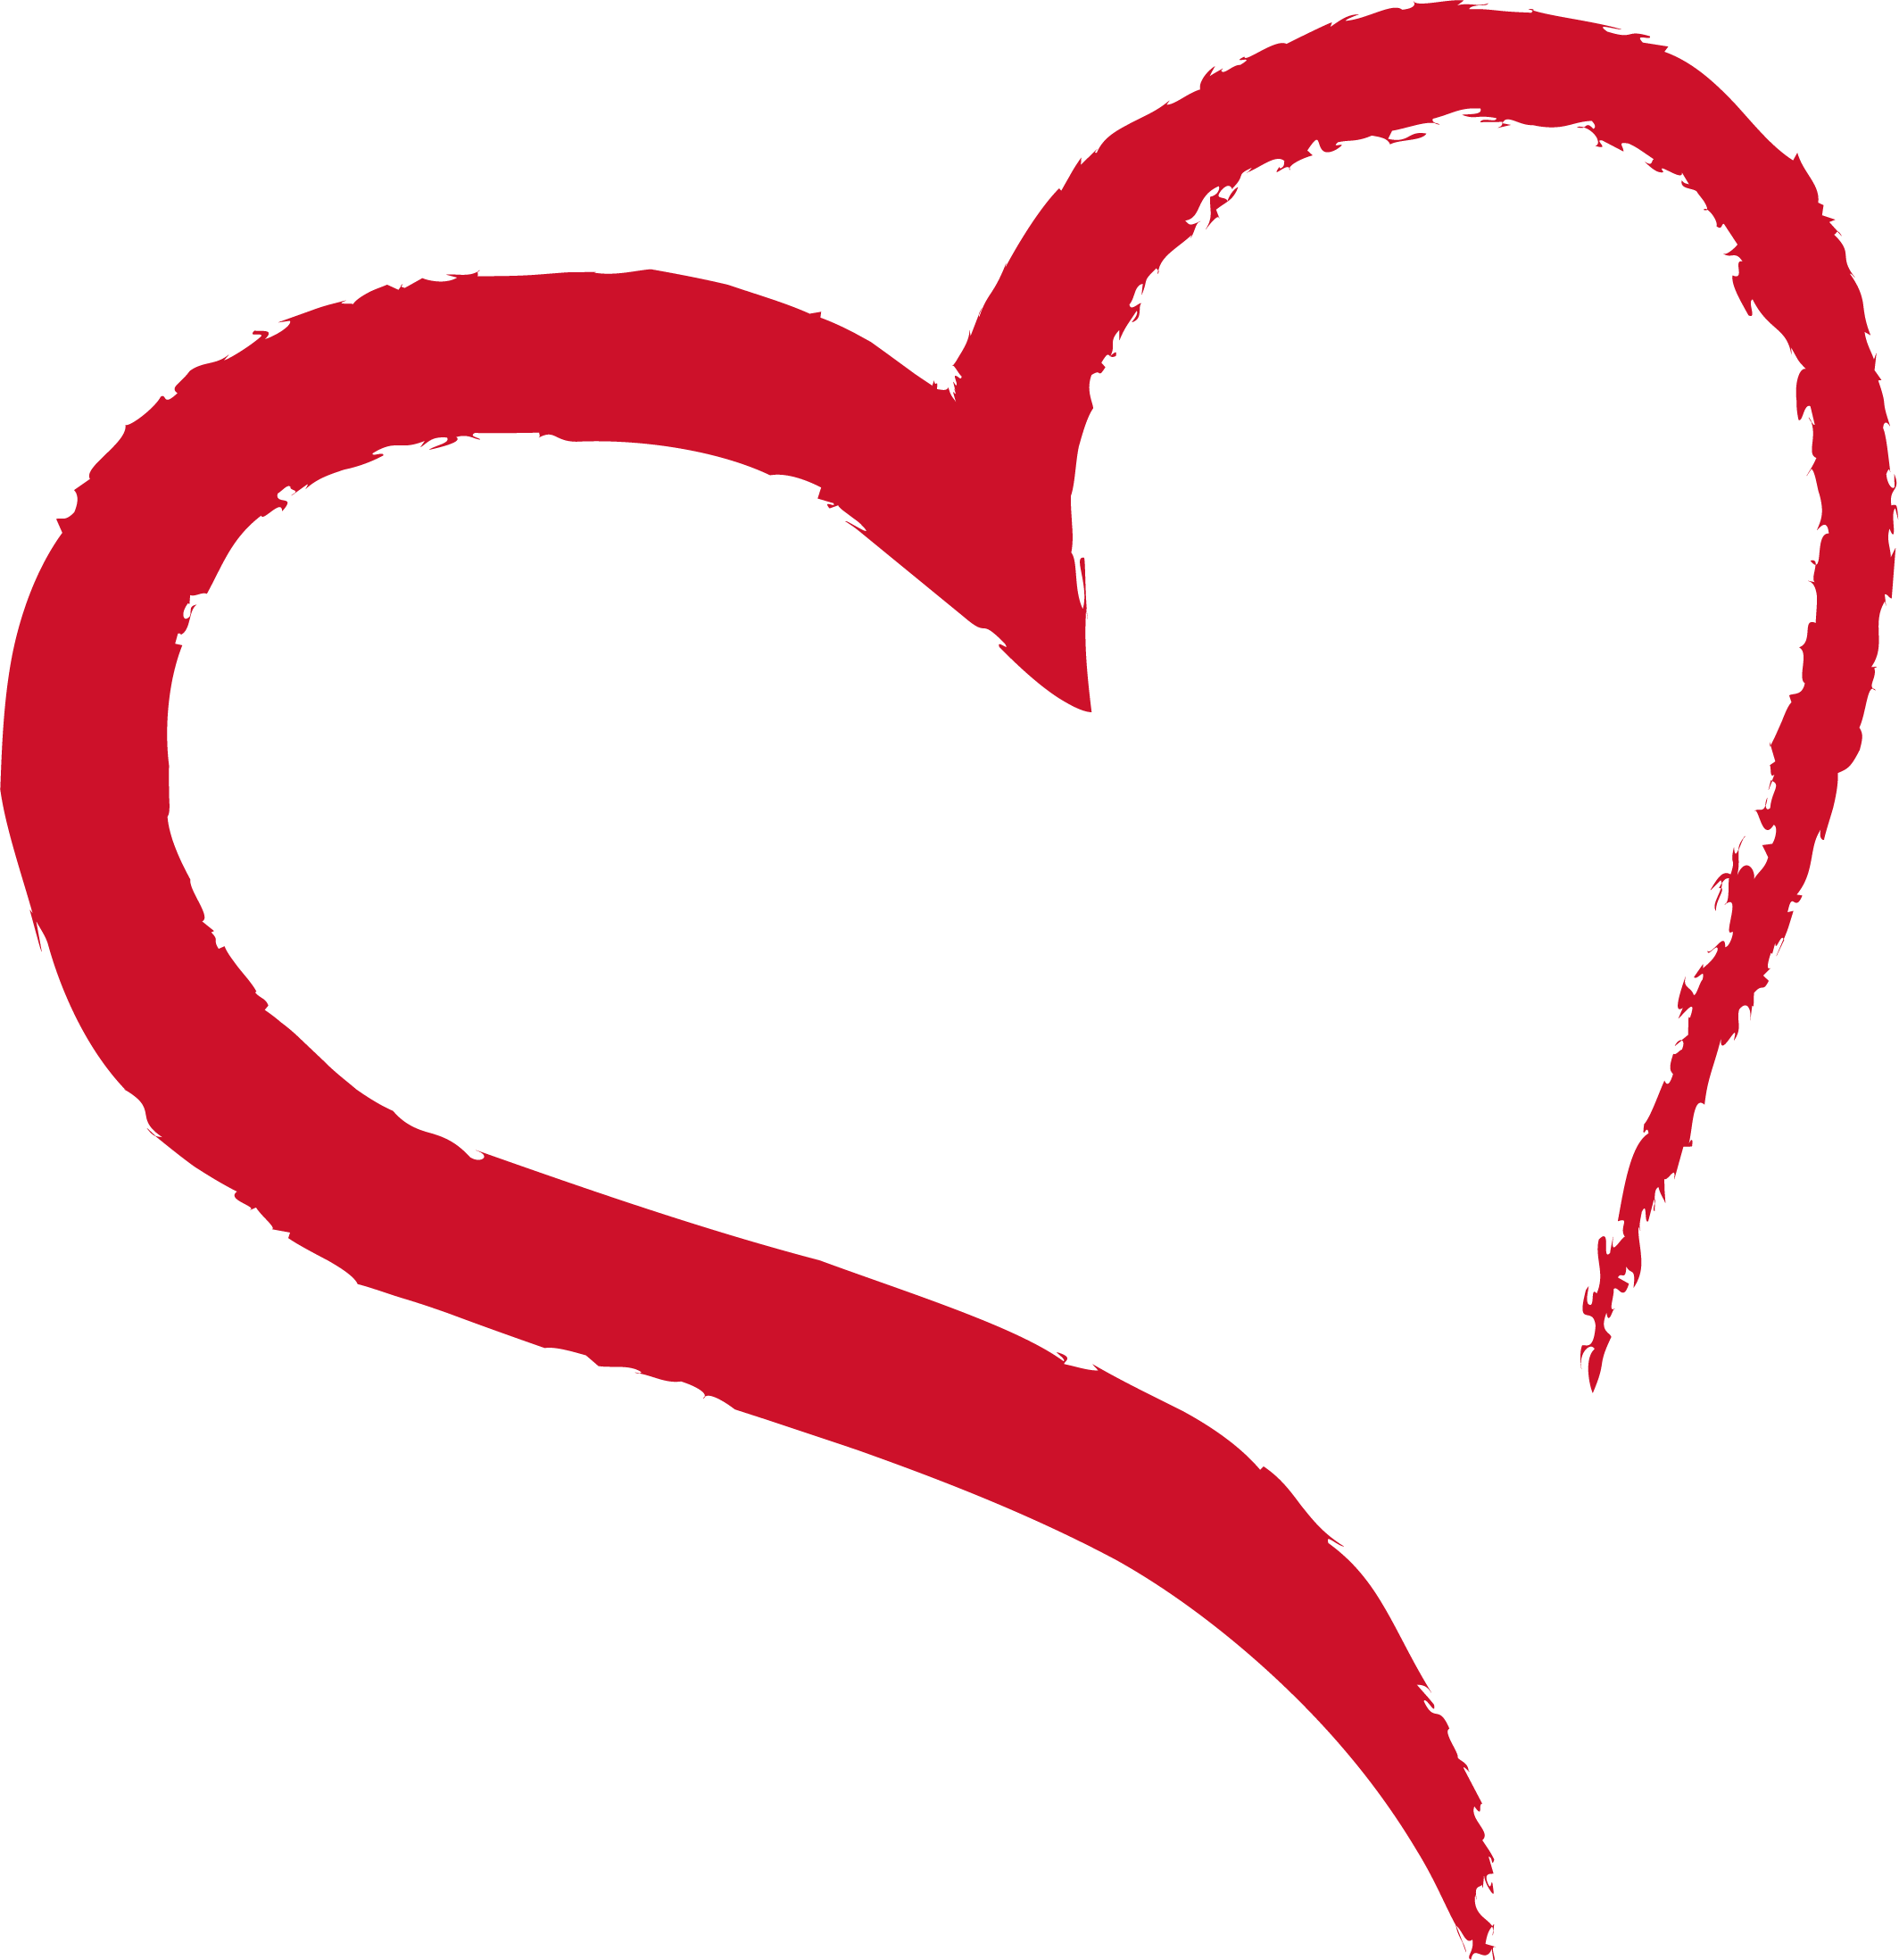 Brush heart png. Ink transprent free download